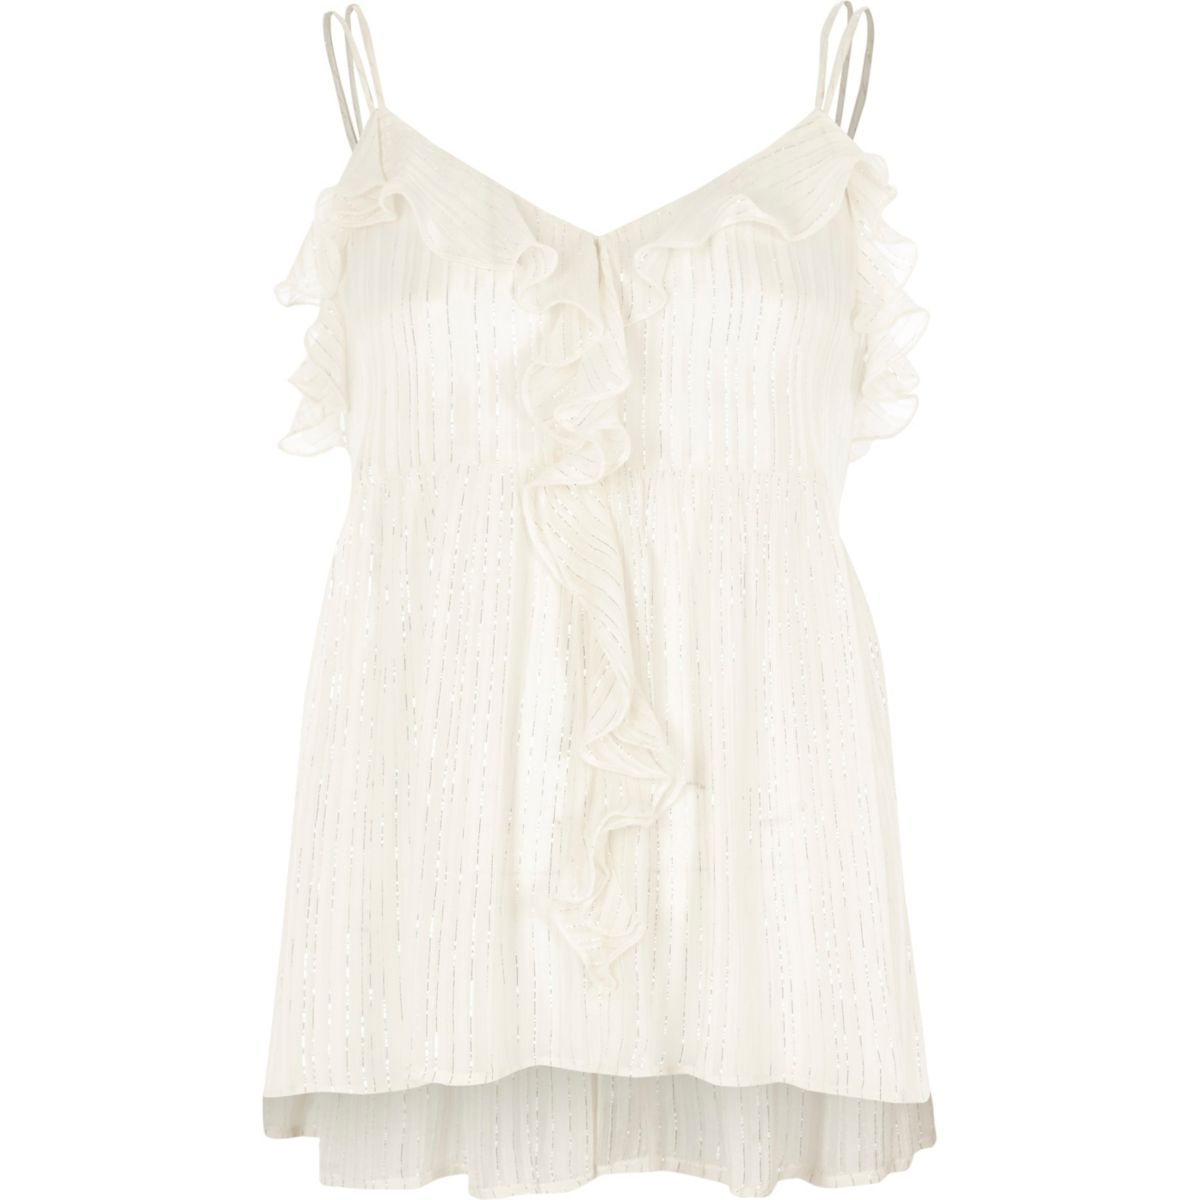 Cream metallic frill cami top